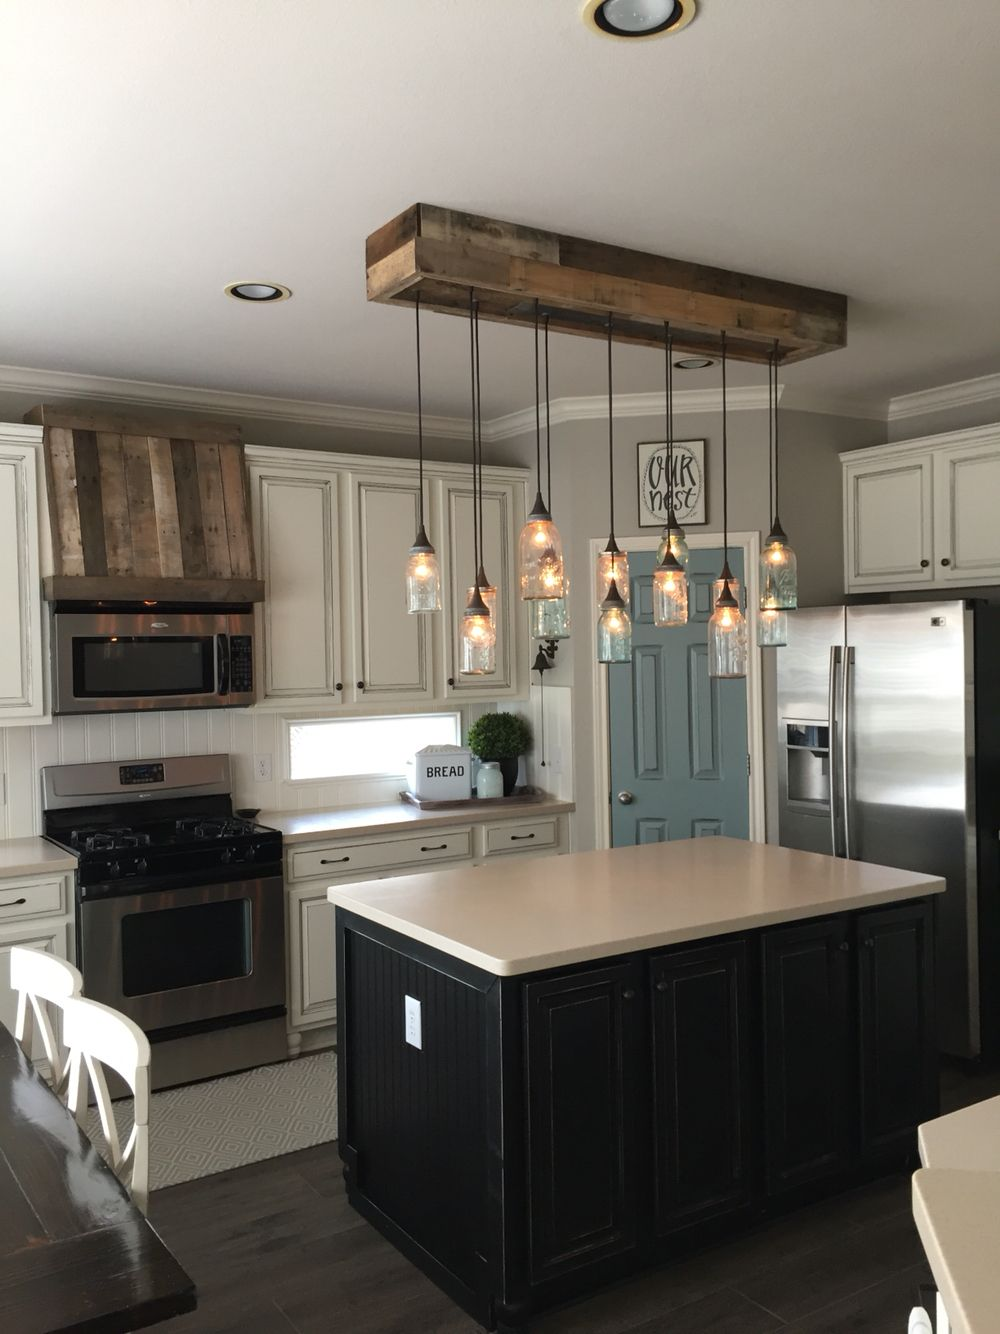 Hi All Updated Pics Ourfauxfarmhouse On IG COME FOLLOW Thanks - Kitchen loghts